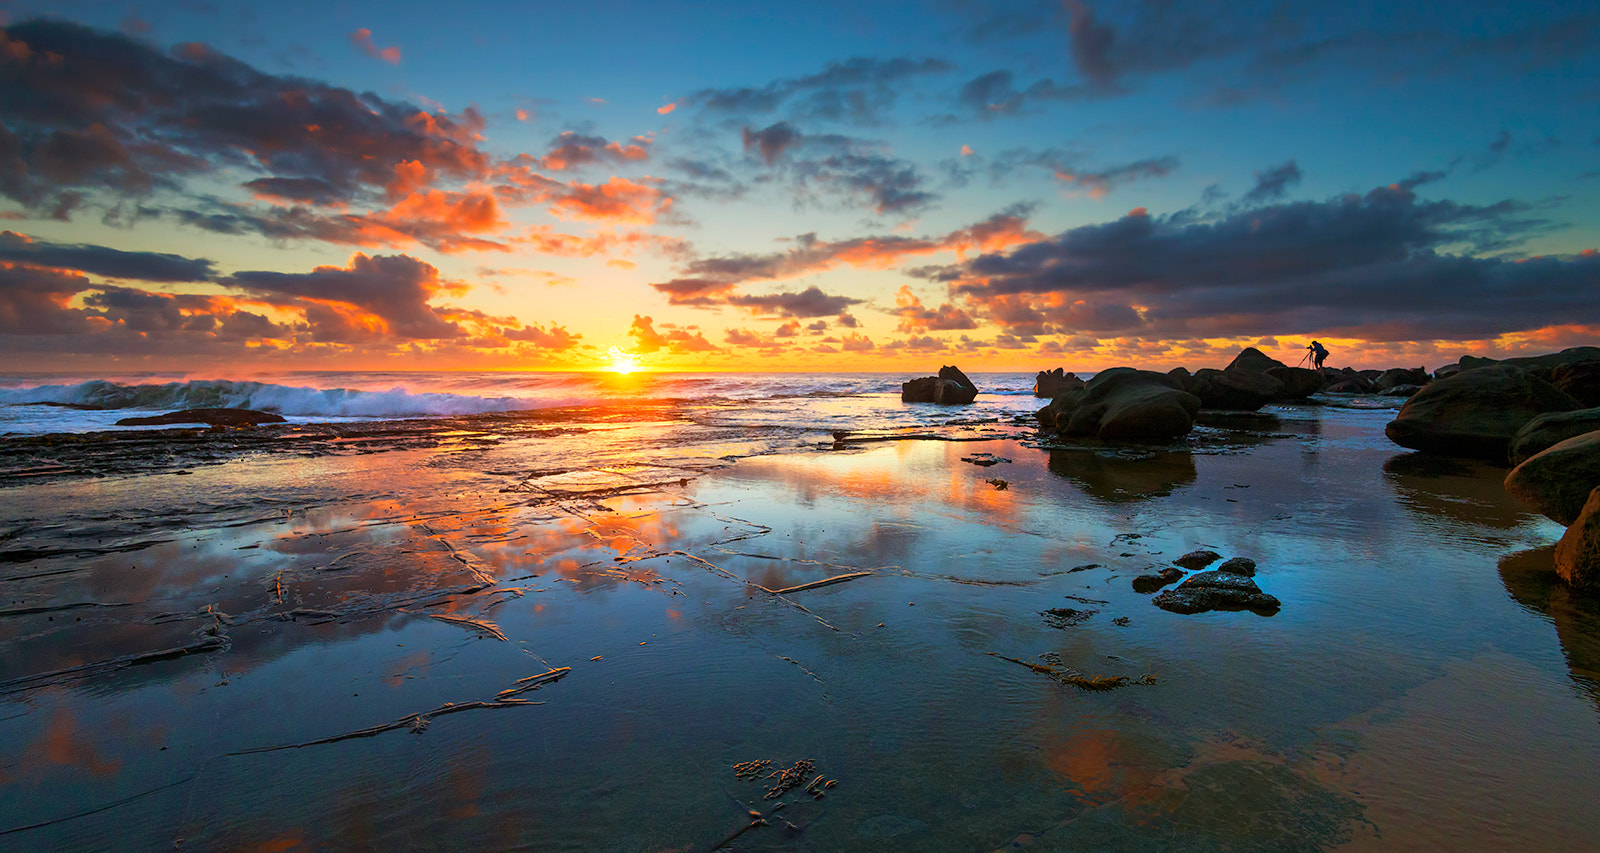 Photograph Forrester beach by Goff Kitsawad on 500px